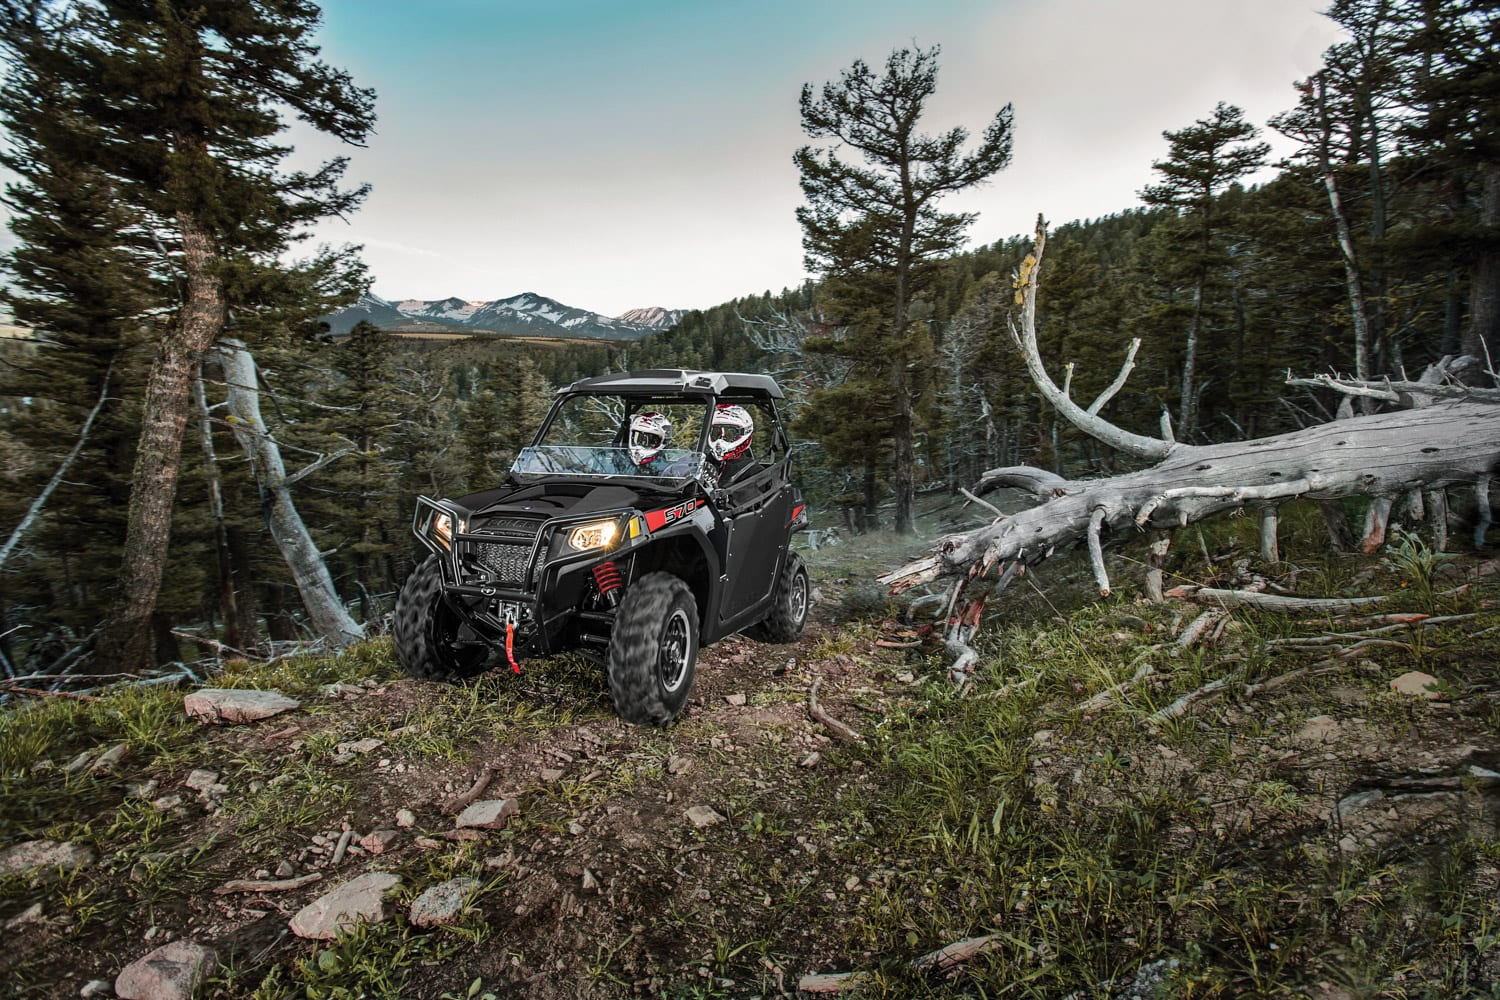 Unfairly overlooked entry-level quads